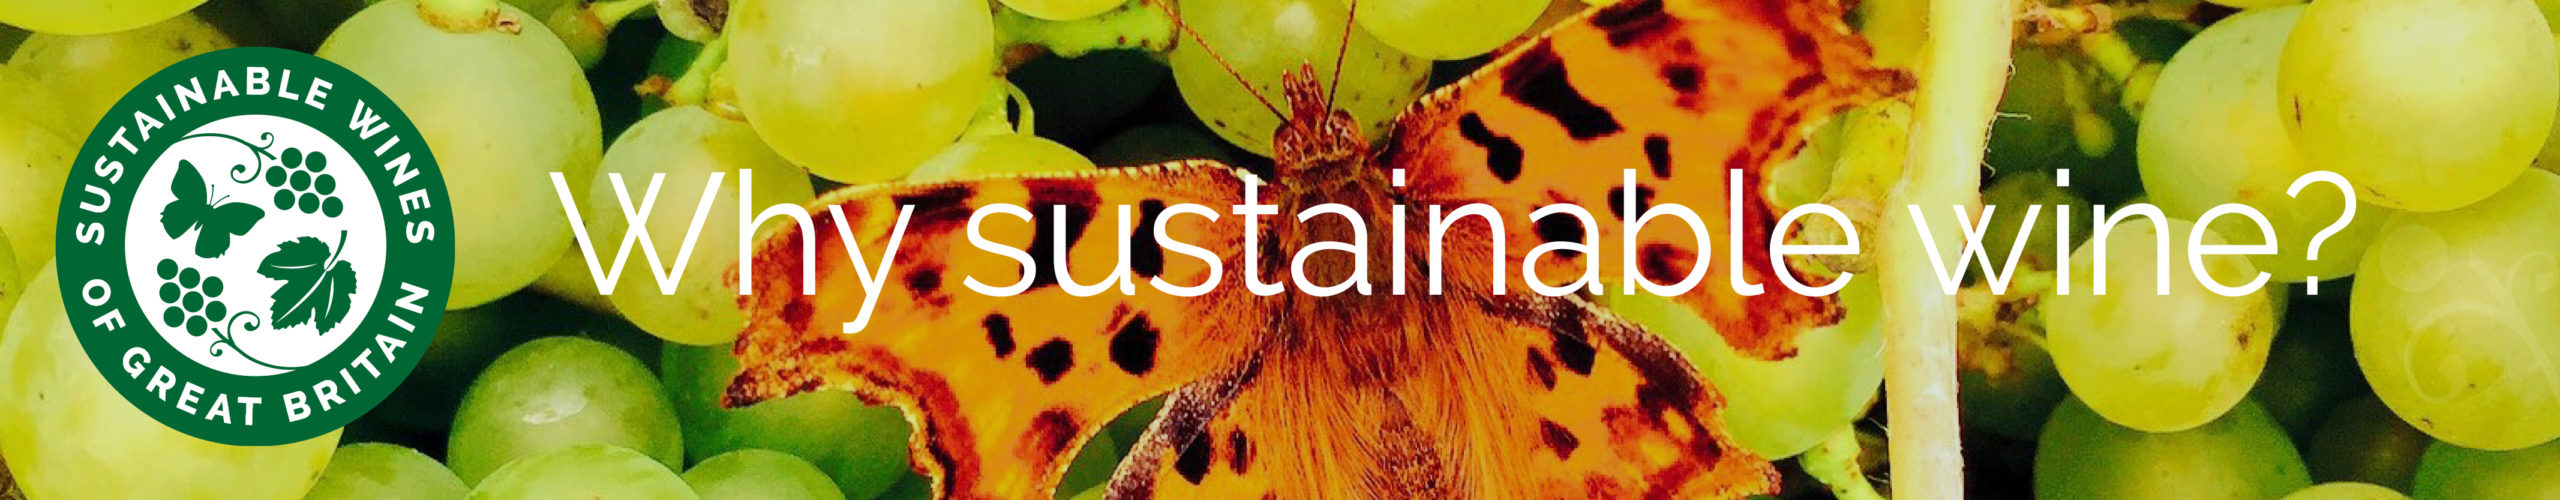 Why Sustainable?